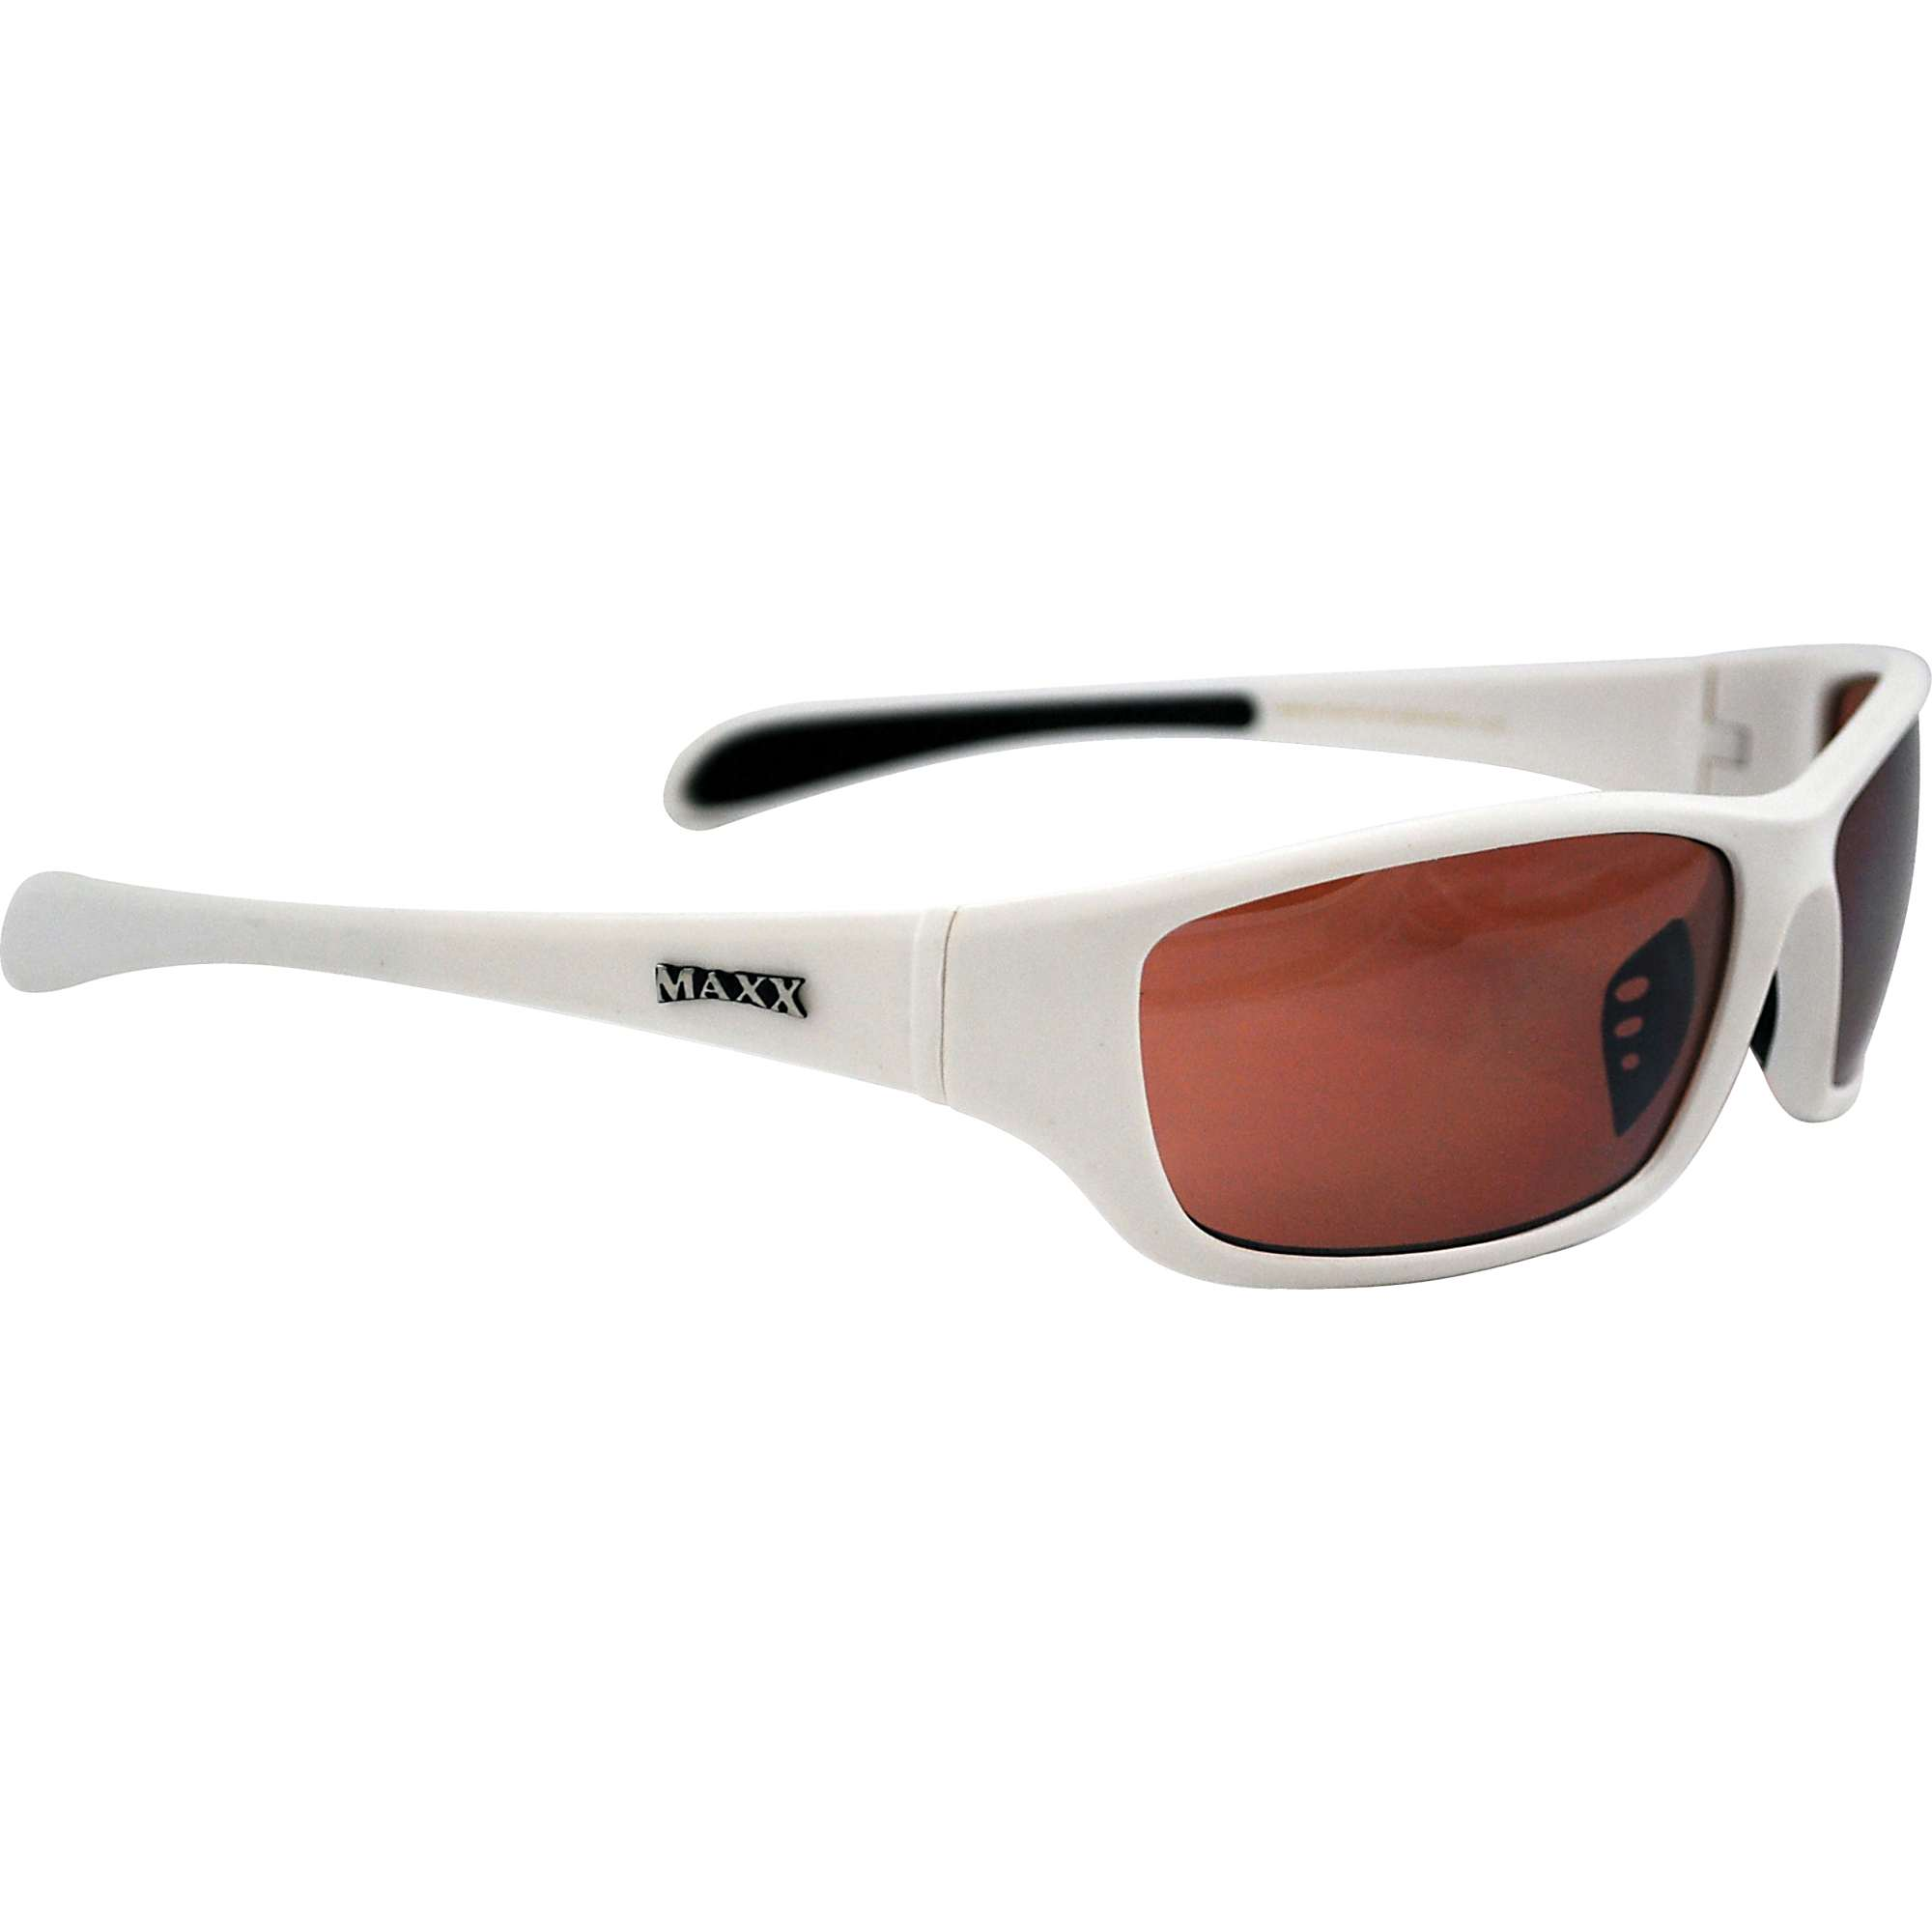 Maxx Hd Venom Sunglasses